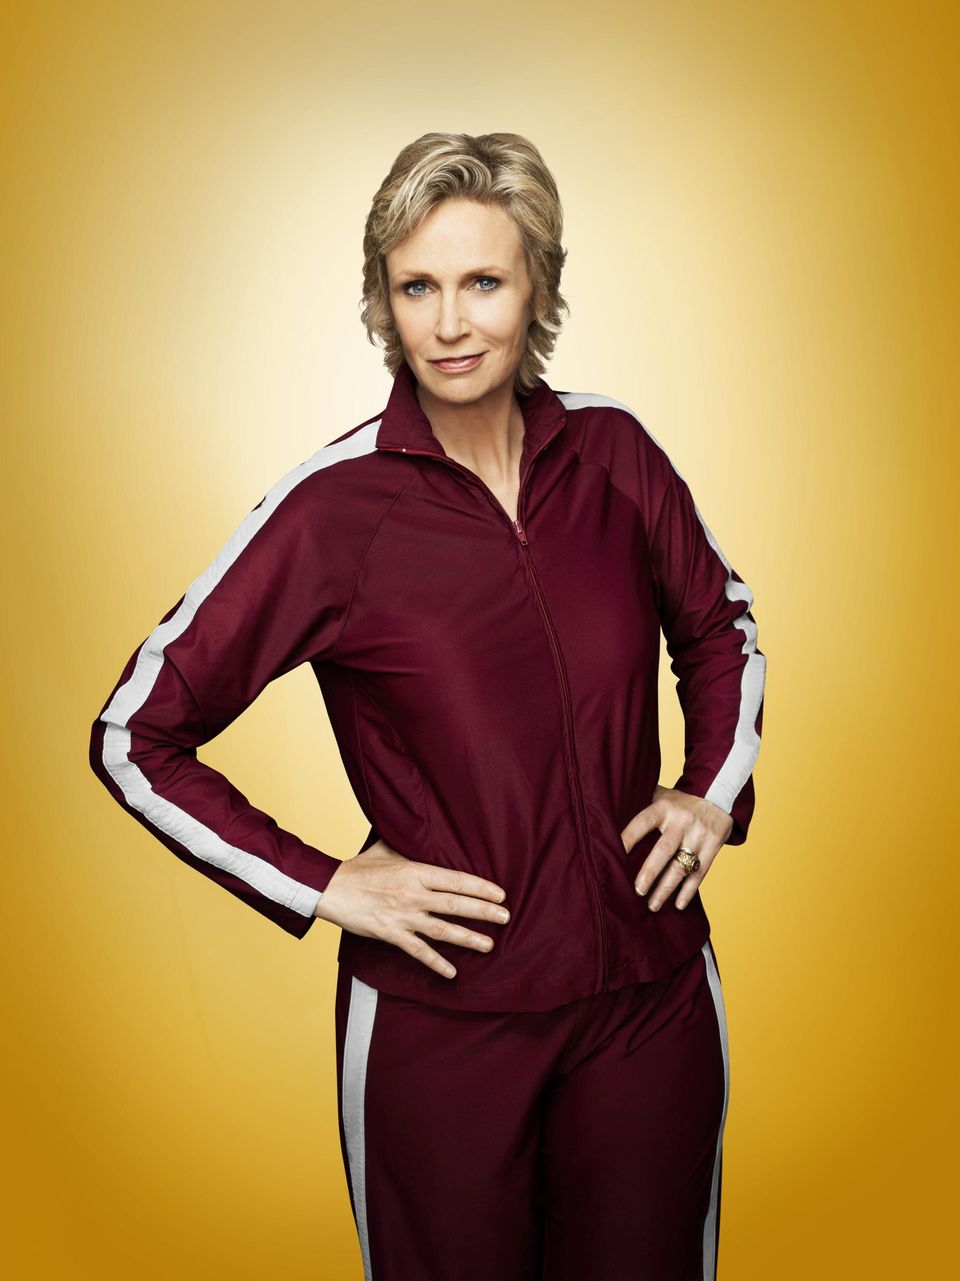 Jane Lynch as Sue Sylvester in